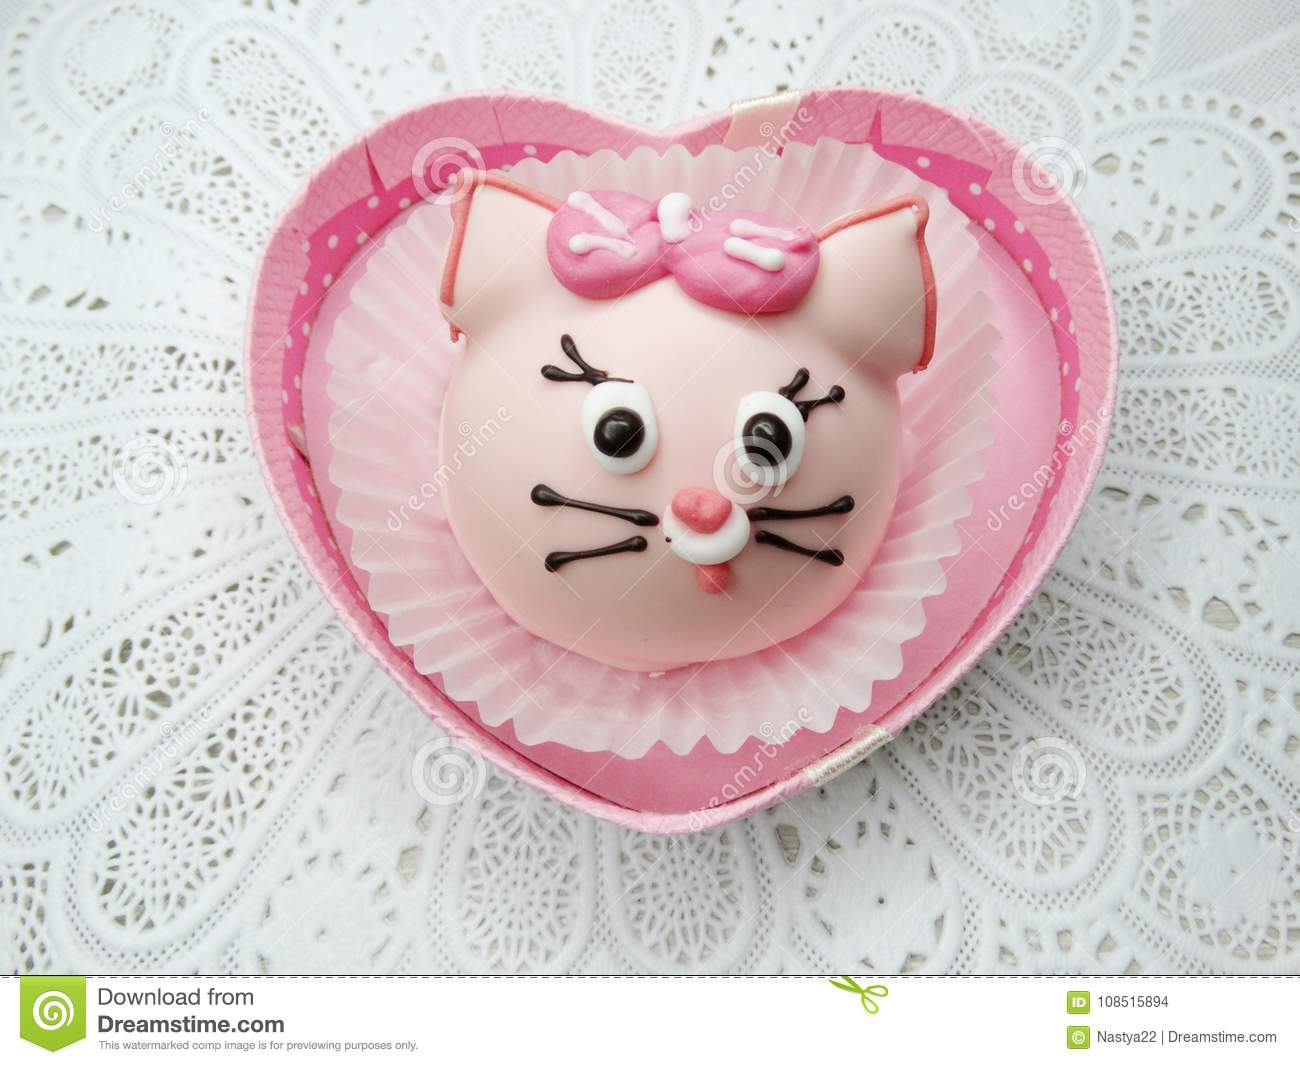 Creative Funny Animal Form Cakes Sweet Food Dessert In Gift